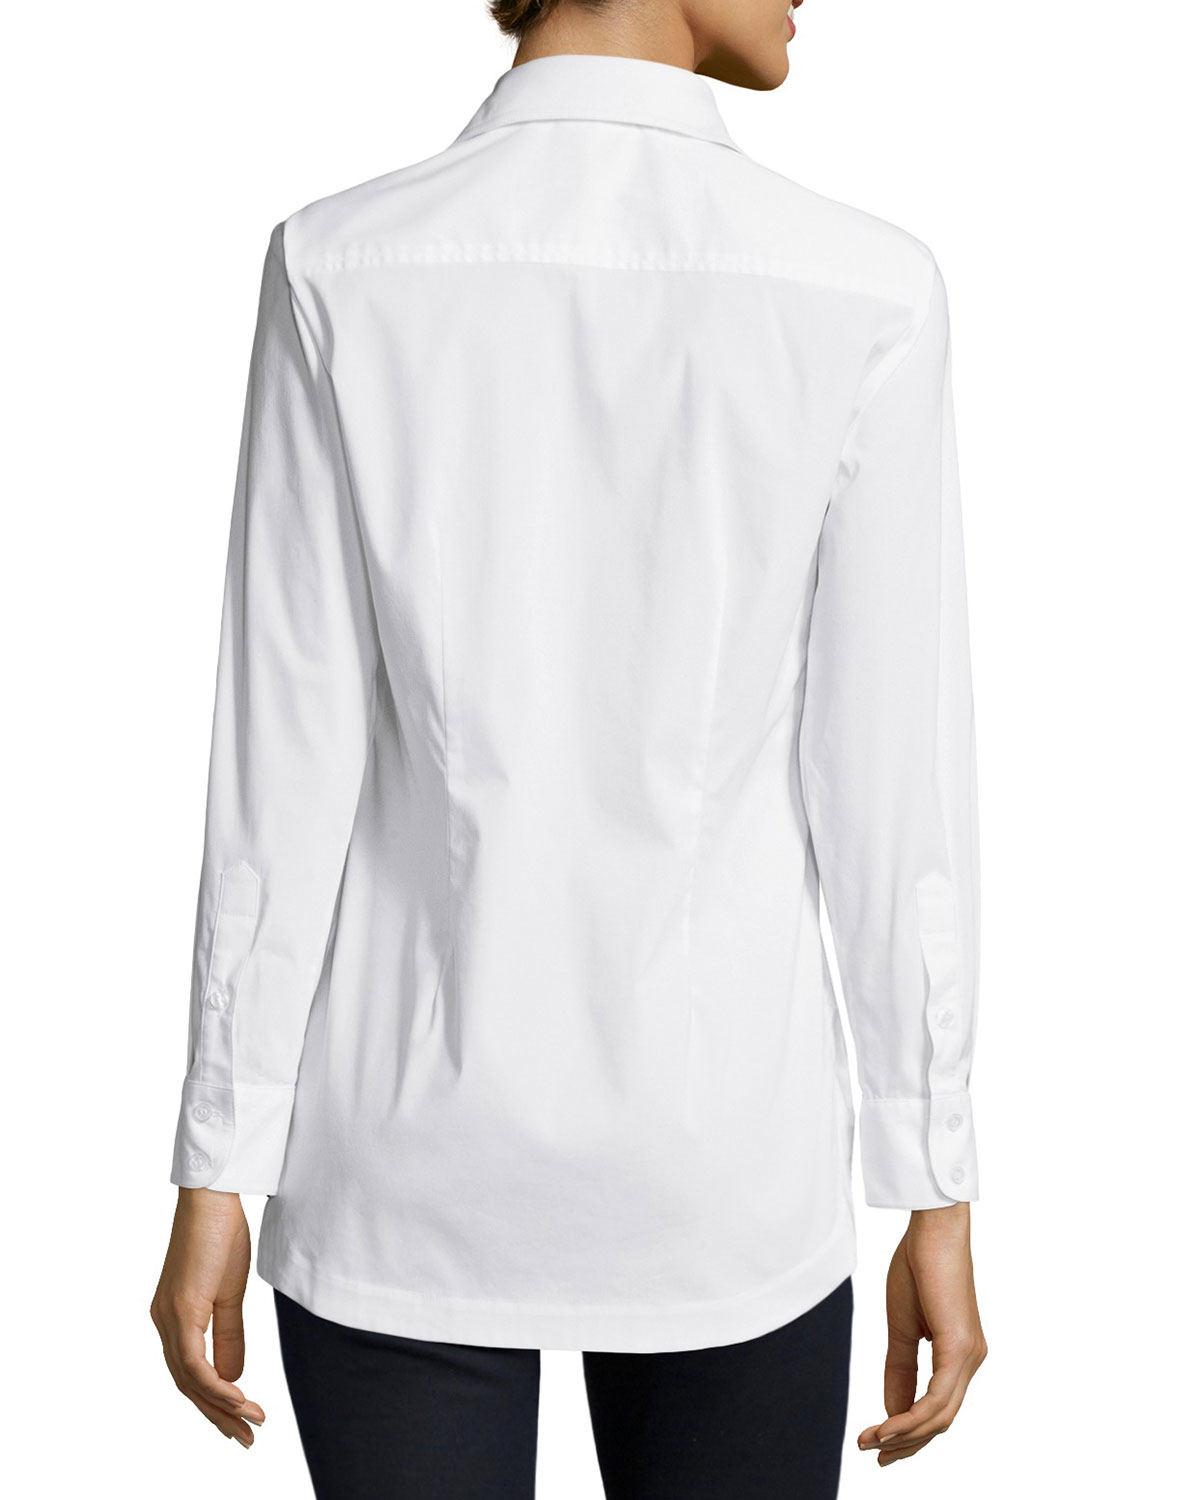 deda32e52b28df Finley Joey Tailored Long-sleeve Blouse in White - Lyst